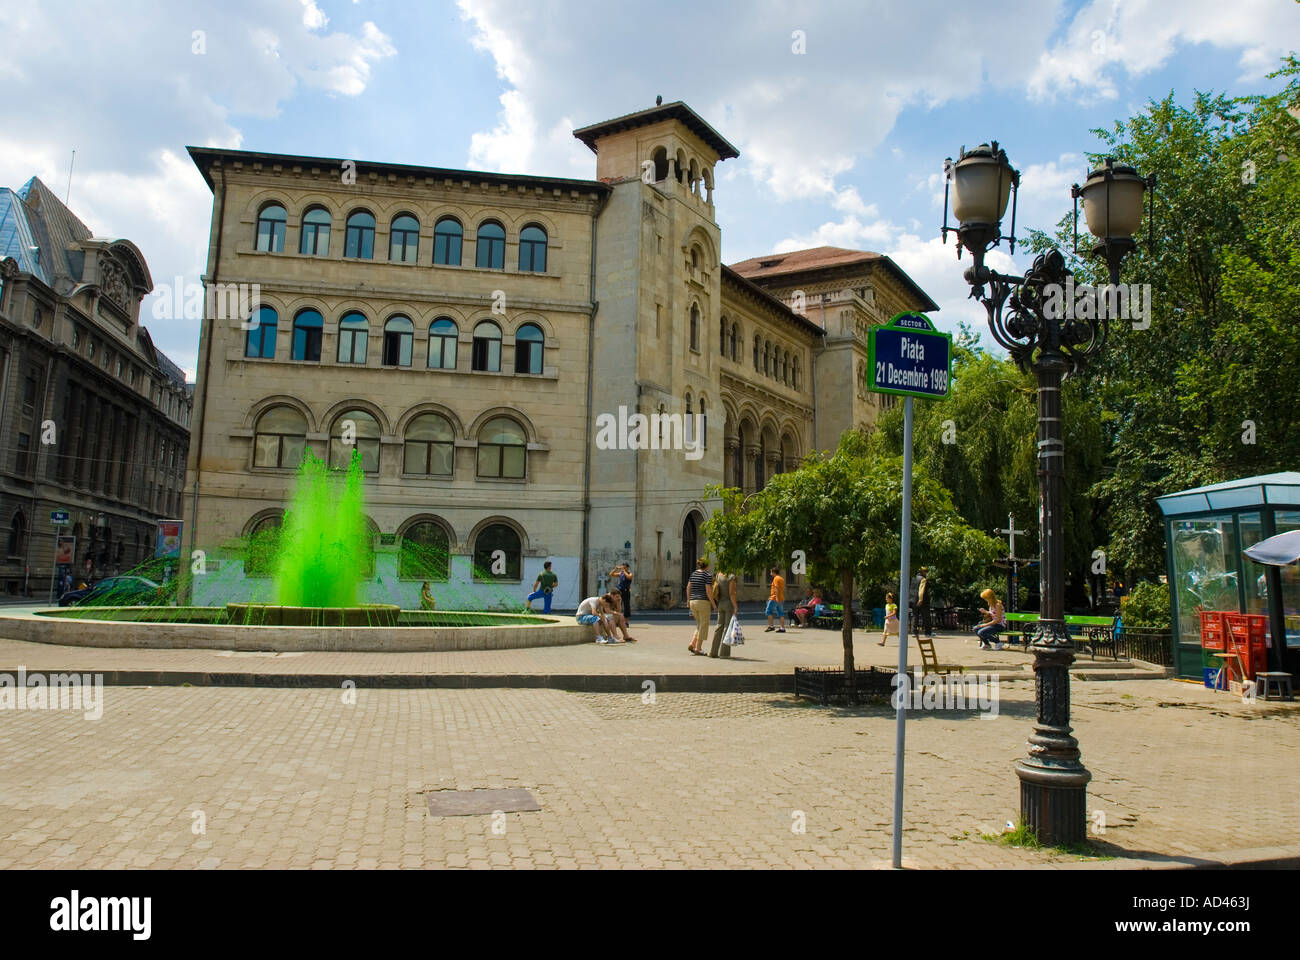 Place of the 21st of December 1989, Bucharest, Romania - Stock Image